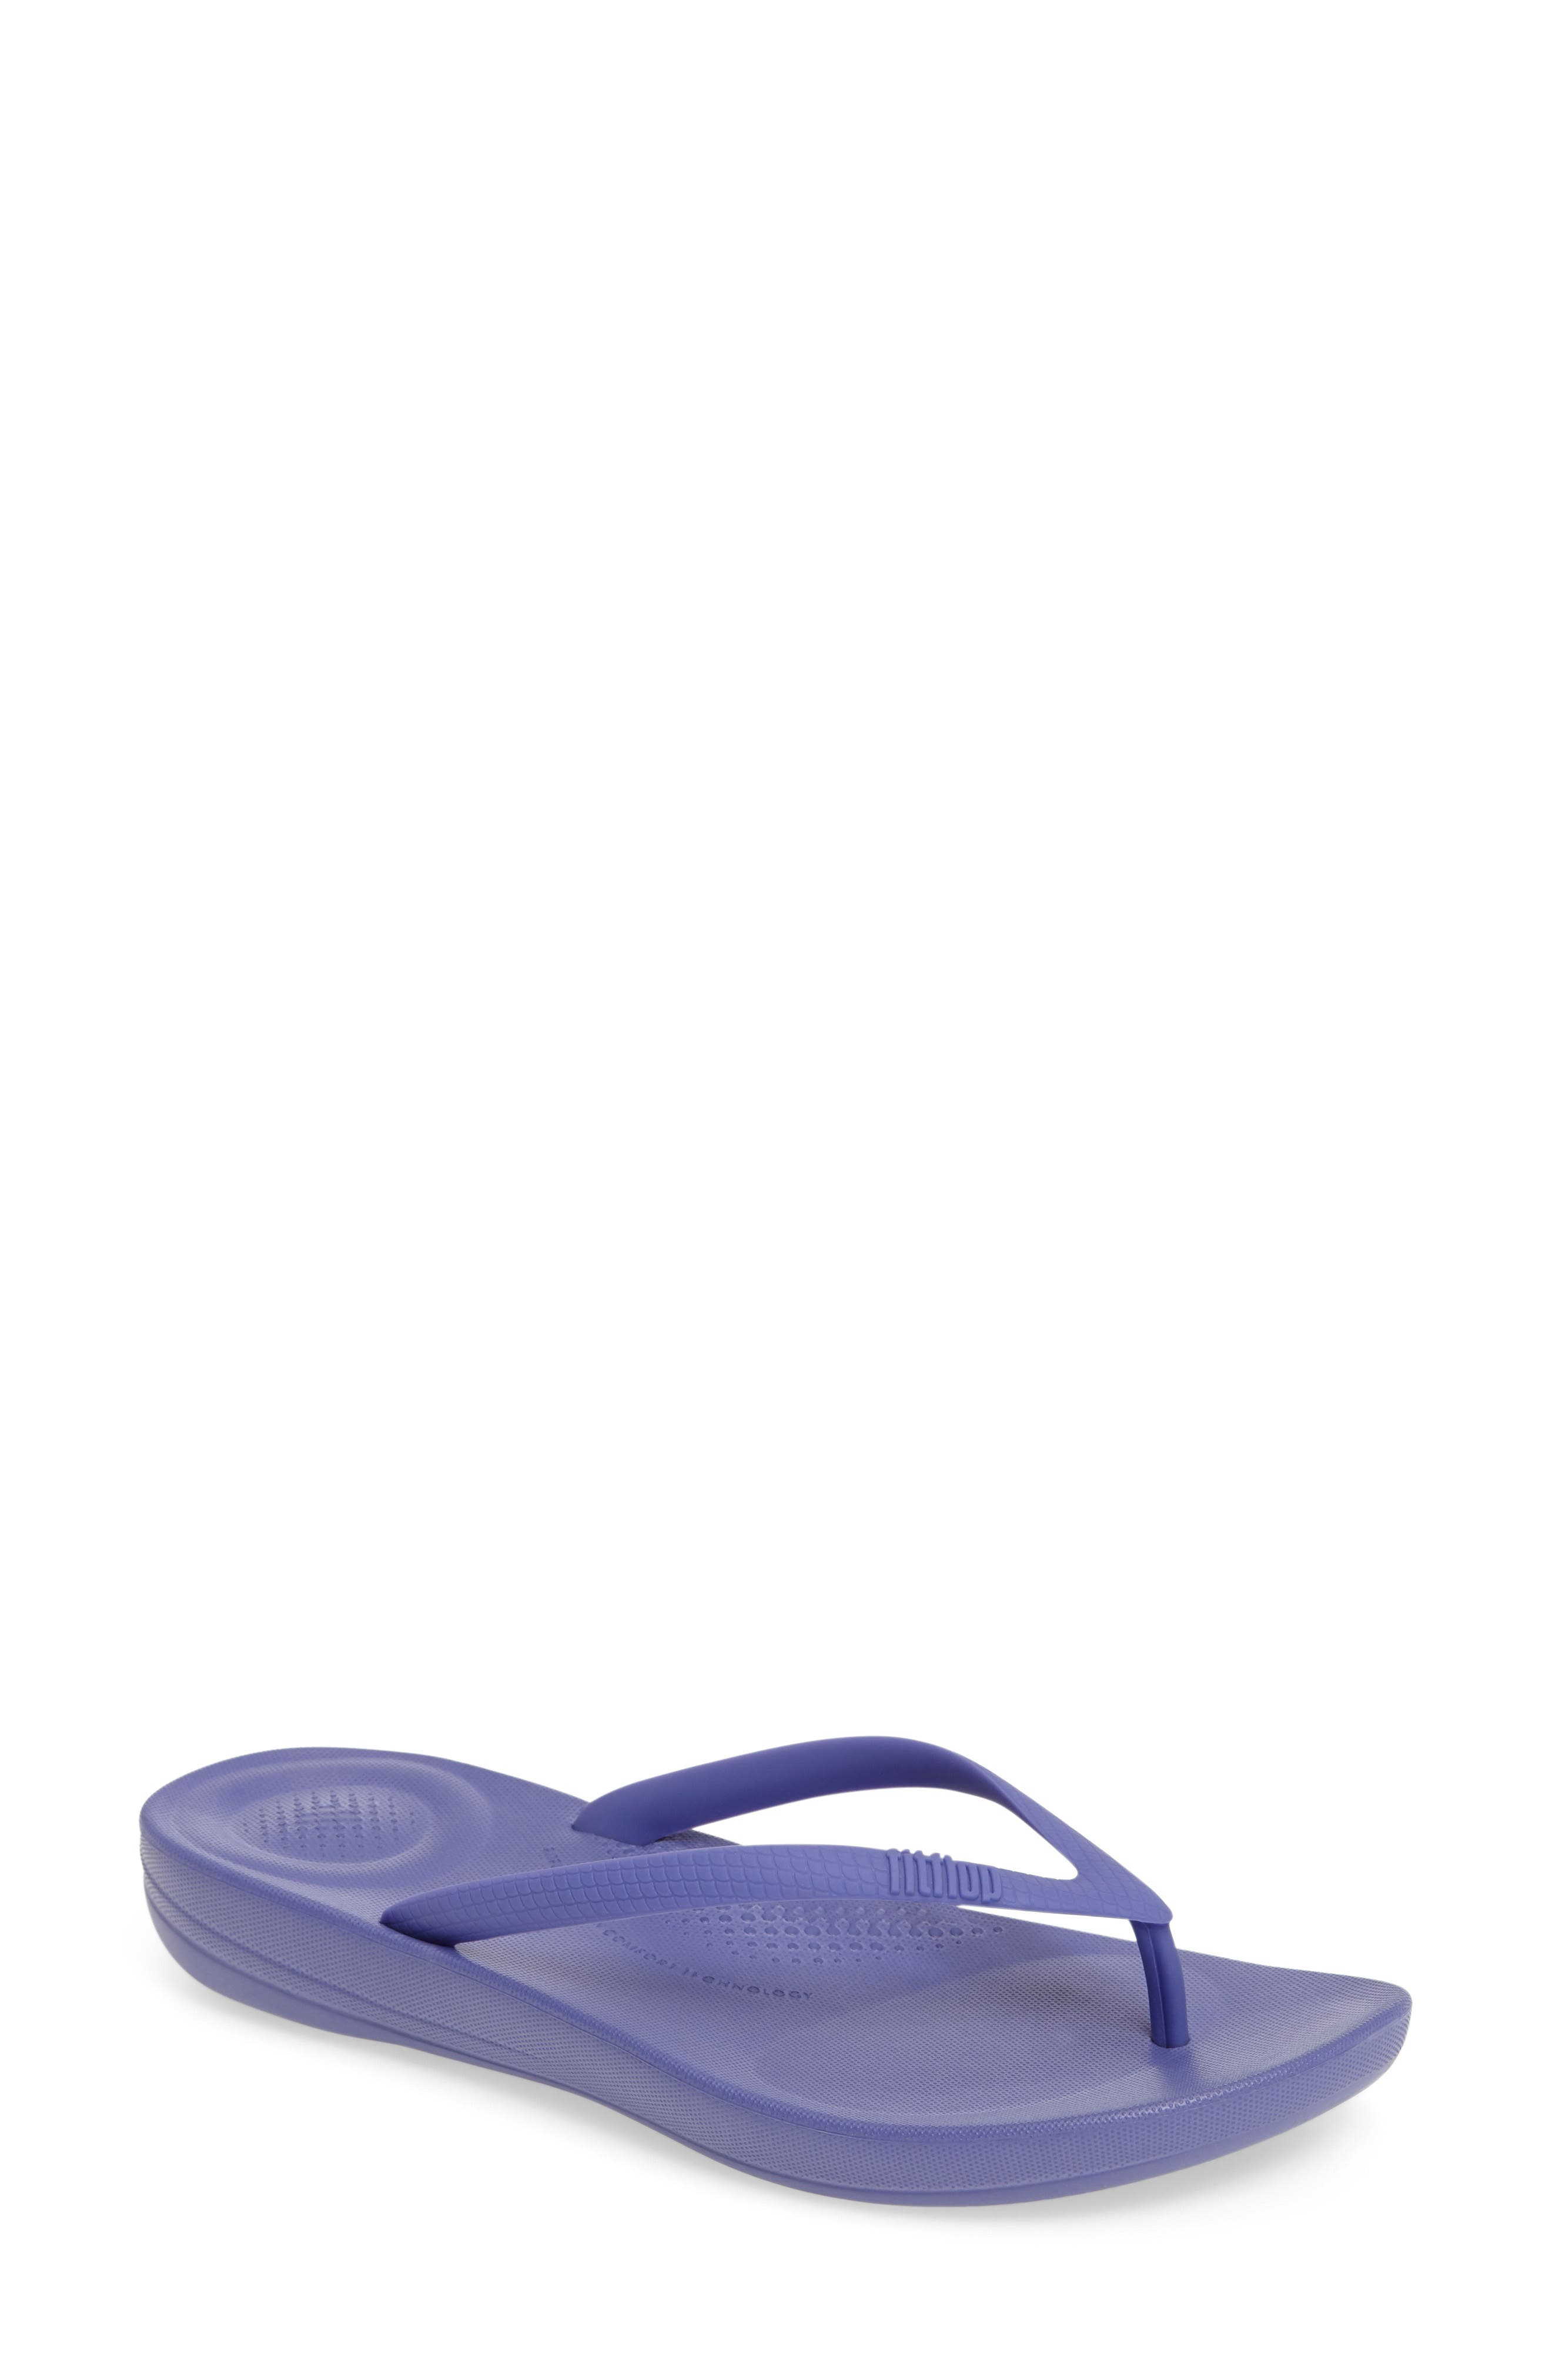 FitFlop™ iQushion Flip Flop (Women)